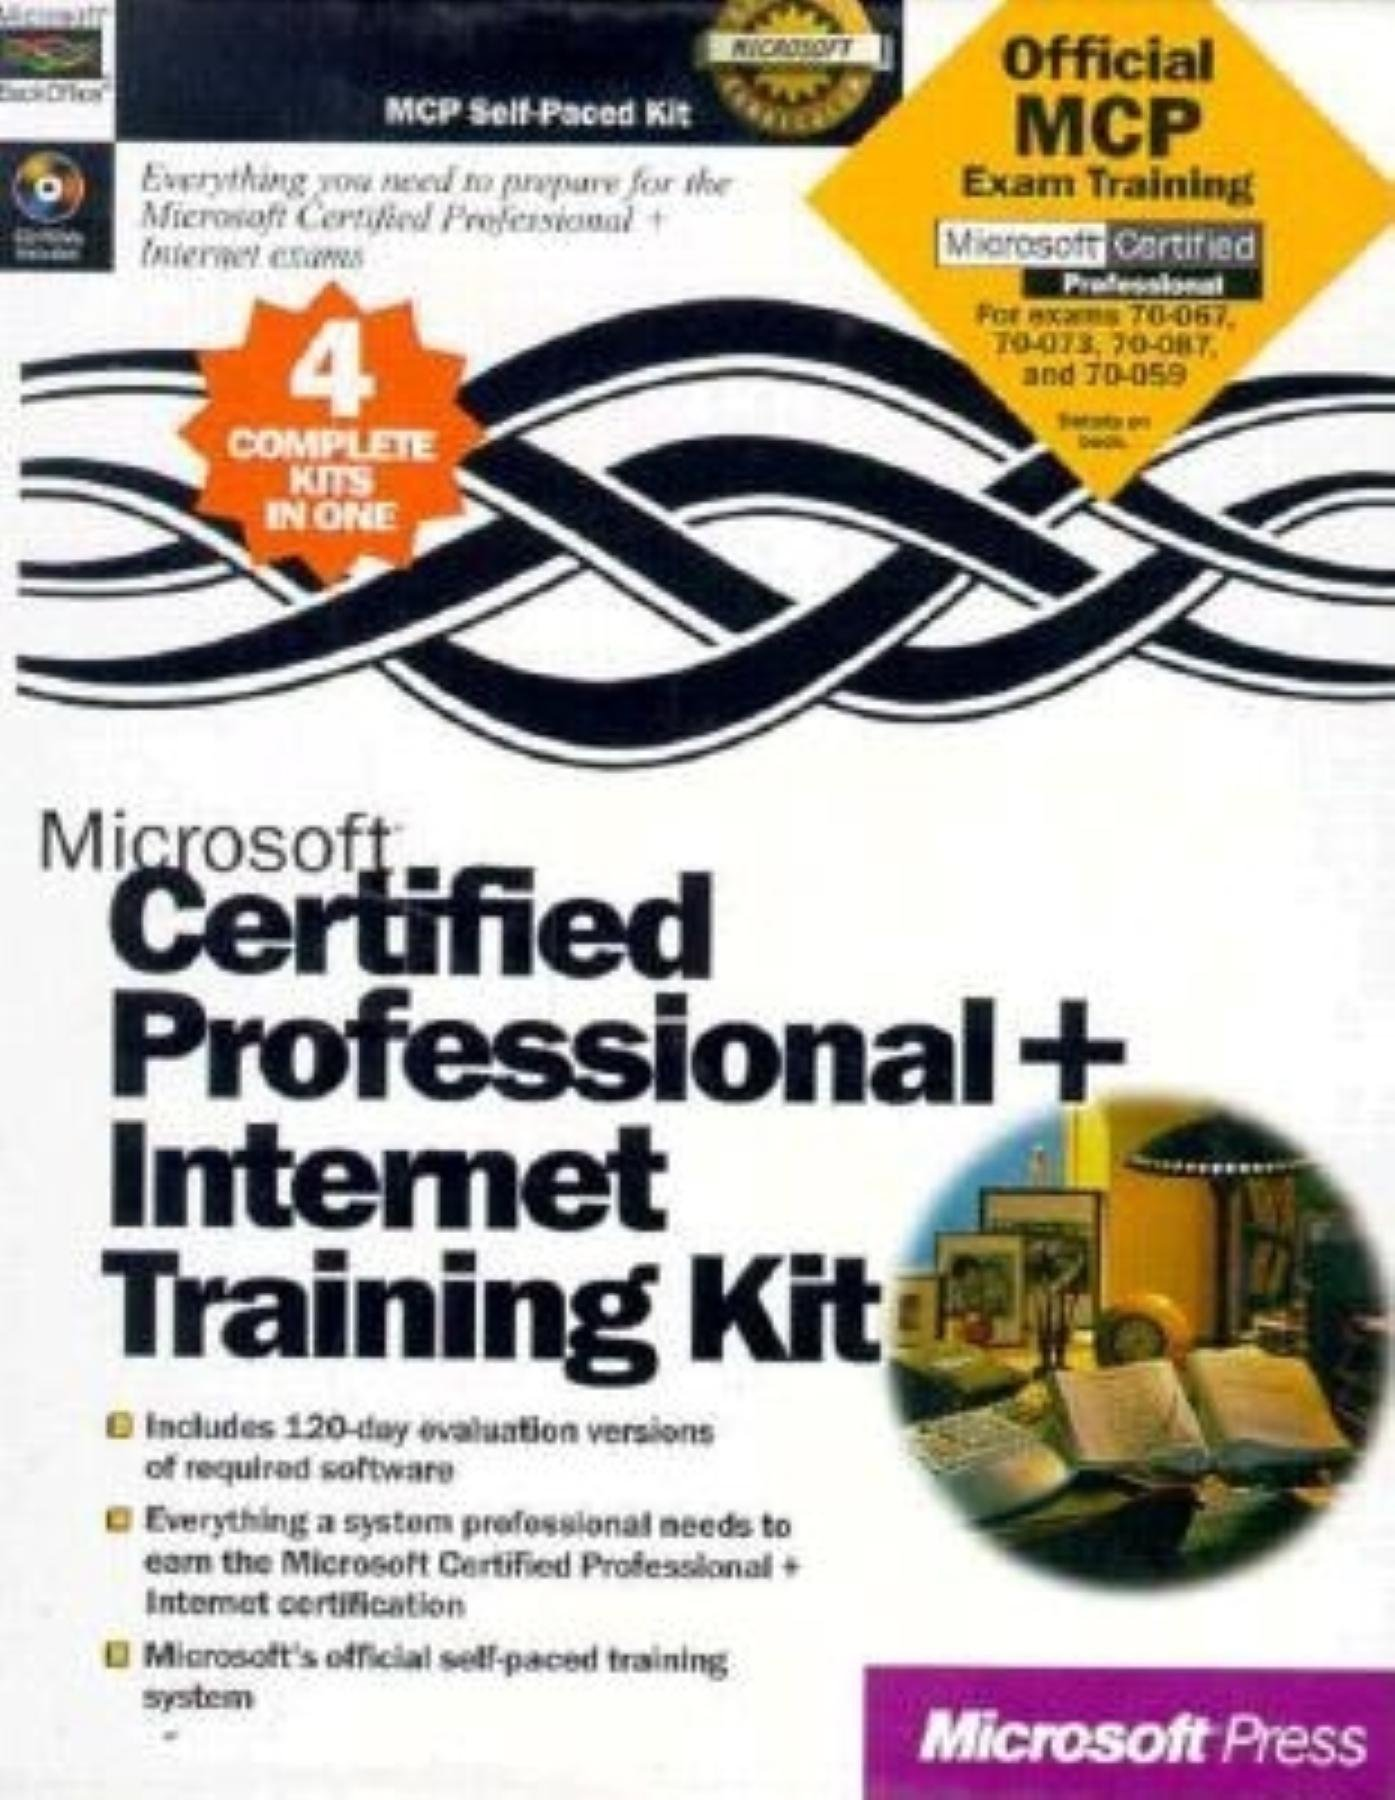 Microsoft certified professional internet training kit microsoft microsoft certified professional internet training kit microsoft press microsoft corporation 0790145190628 amazon books 1betcityfo Choice Image